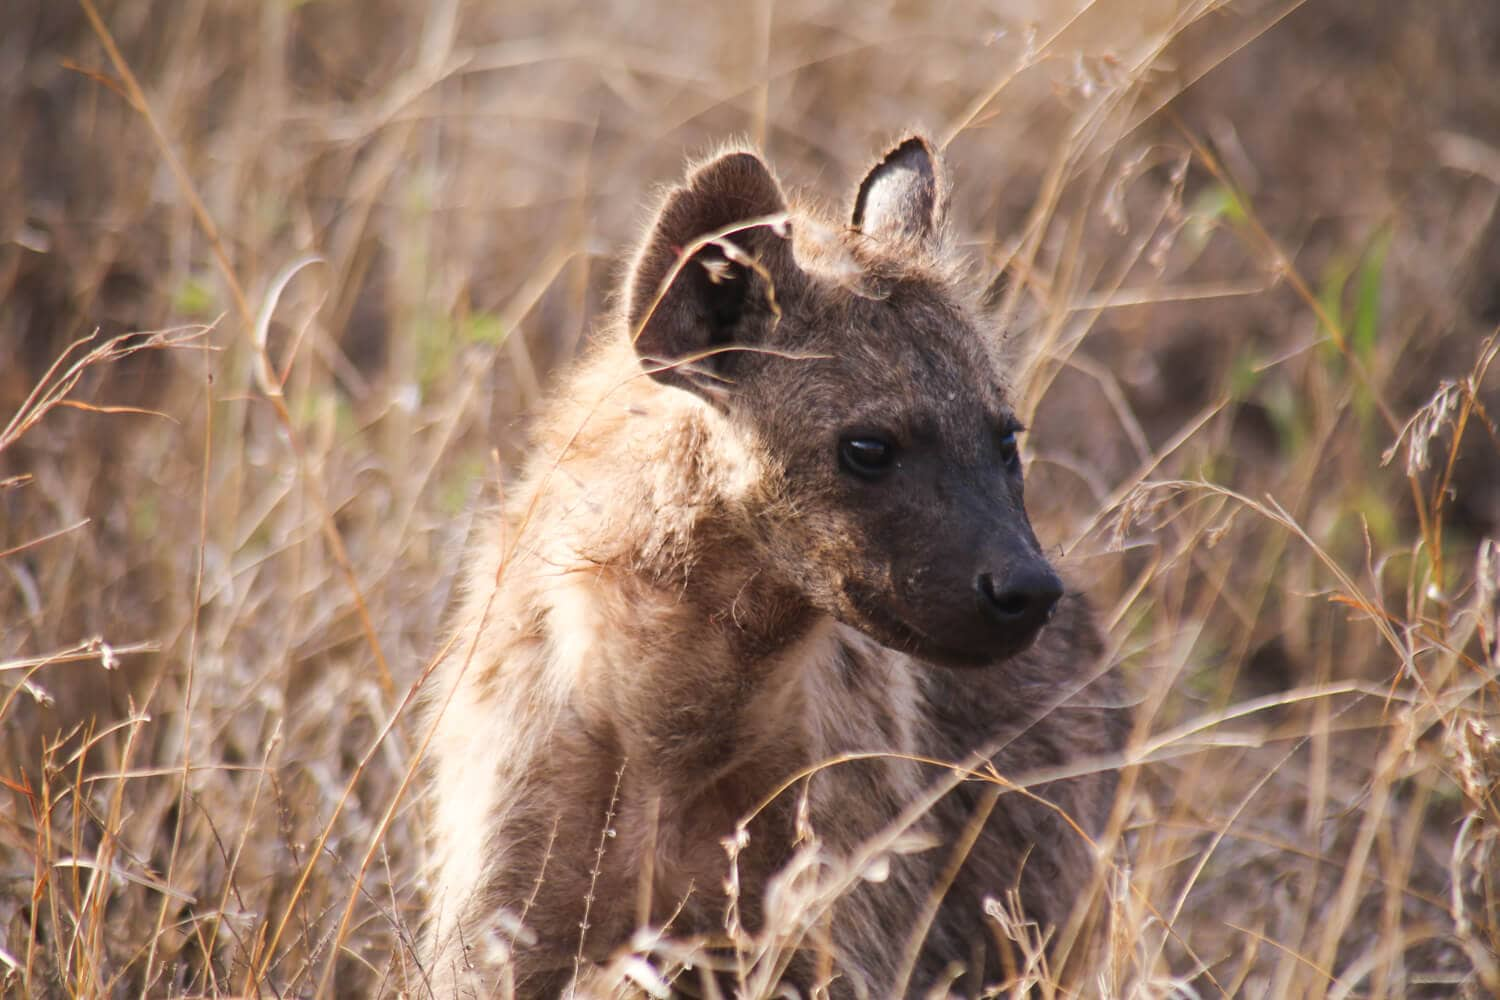 A young hyena stands among tall grass